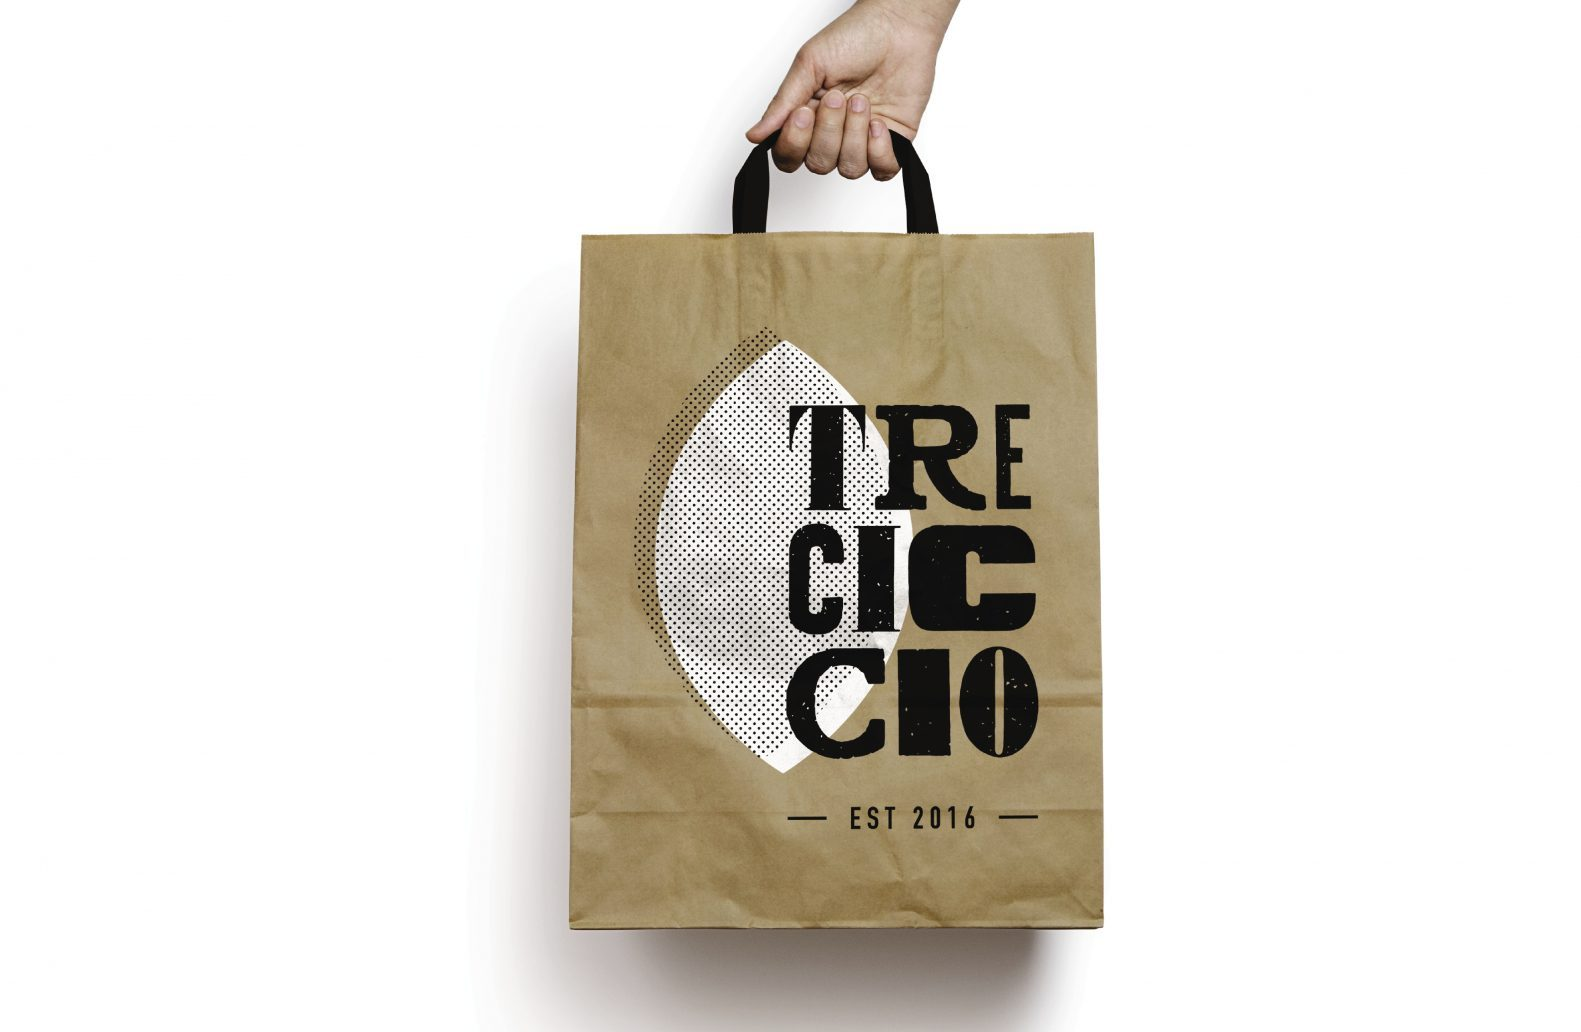 Tre Ciccio Branding for Takeaway Bag by Phaus